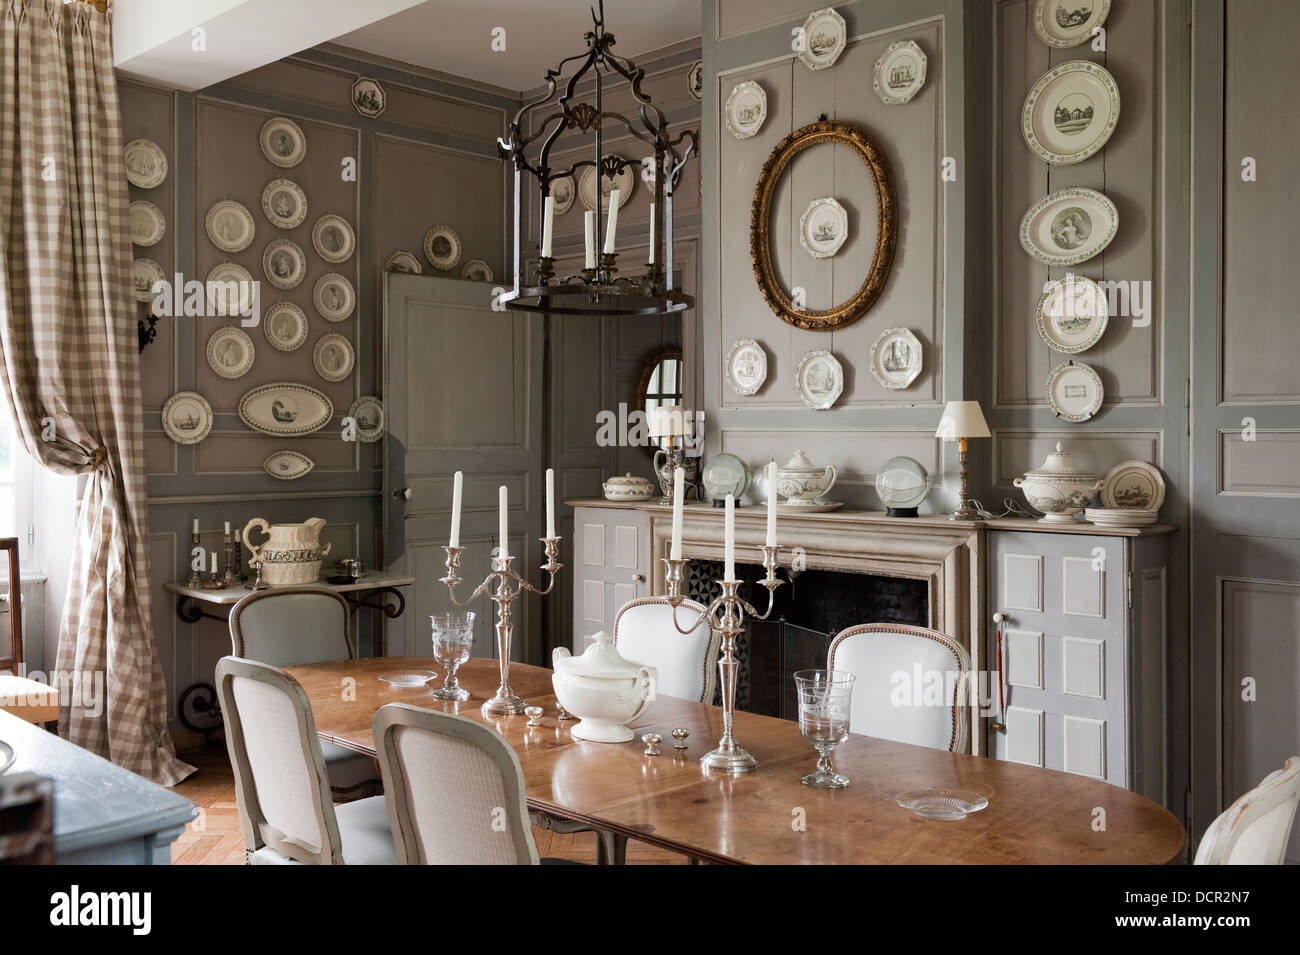 https://c8.alamy.com/comp/DCR2N7/french-antique-chairs-and-table-in-elegant-dining-room-with-wood-wall-DCR2N7.jpg